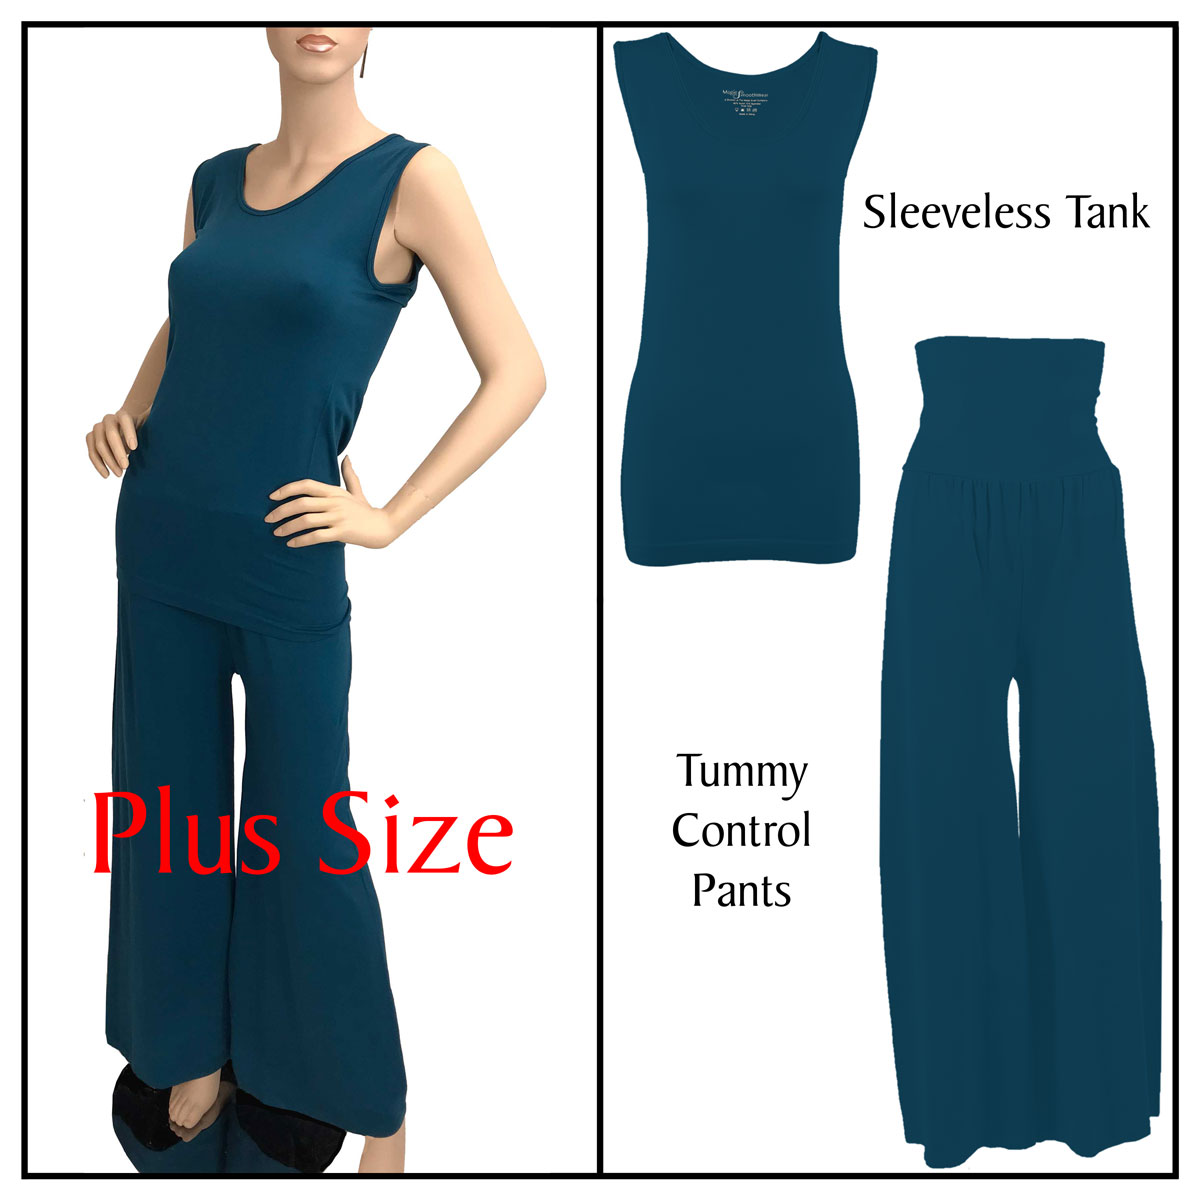 Smooth Beginnings (SmoothWear Sleeveless + Pants) - Dark Teal Sleeveless Top (Plus Size) with Pants